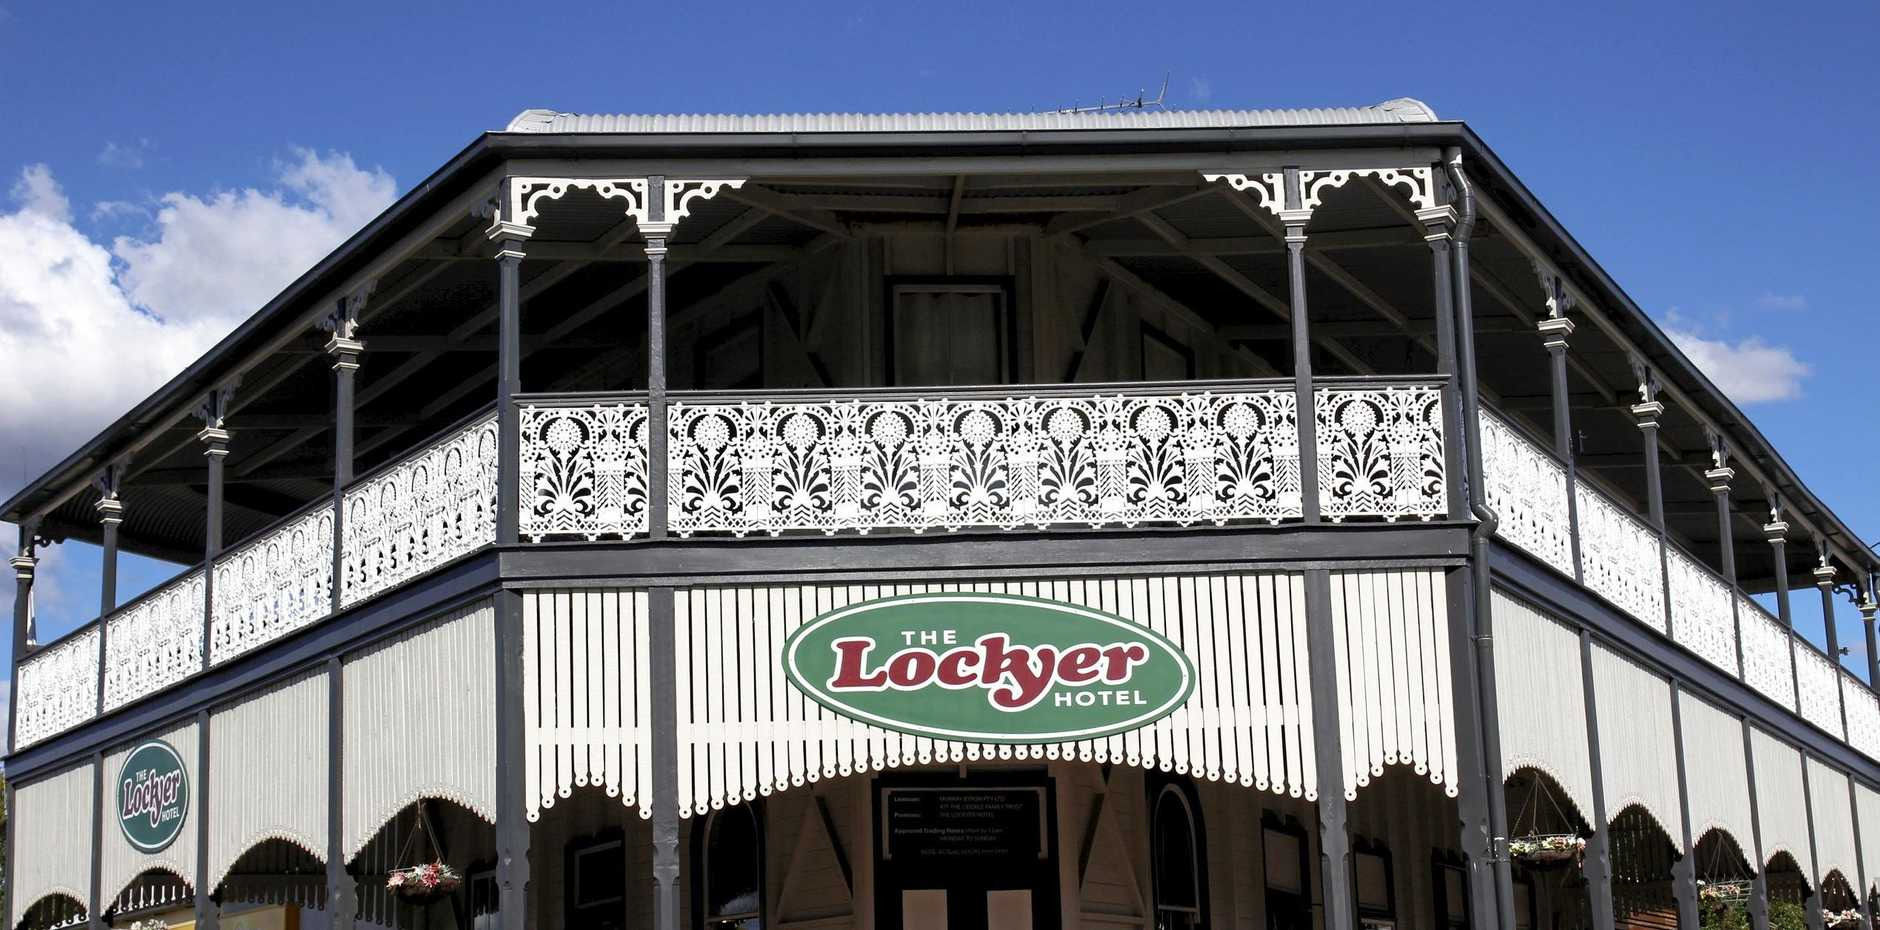 NEARLY DONE: Renovation work at the Lockyer Hotel is almost complete after new owners took over the heritage listed pub.